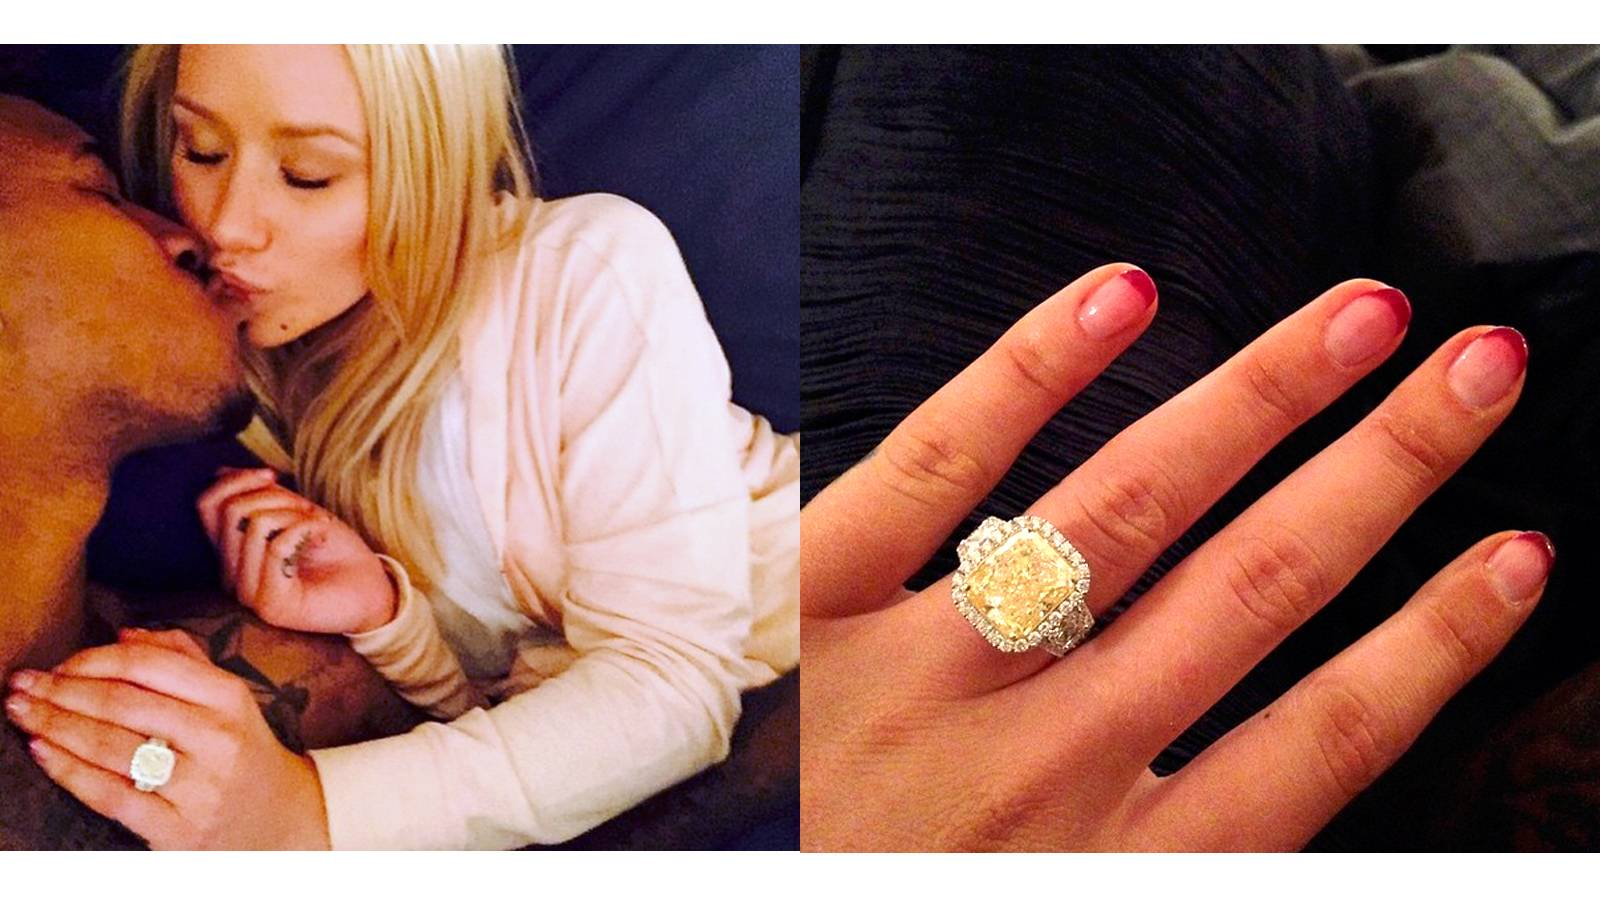 """Iggy Azalea - She's so fancy, you already know. And she's got the bling to prove it! Longtime love Nick Young popped the question at his 30th birthday bash on June 1 with this shimmering """"10.43-carat ring, consisting of an 8.15-carat fancy intense yellow diamond and a white diamond halo set into white gold,"""" according to People. Young co-designed the piece with jeweler Jason Arasheben of Jason of Beverly Hills.  (Photos: Iggy Azalea via Instagram)"""